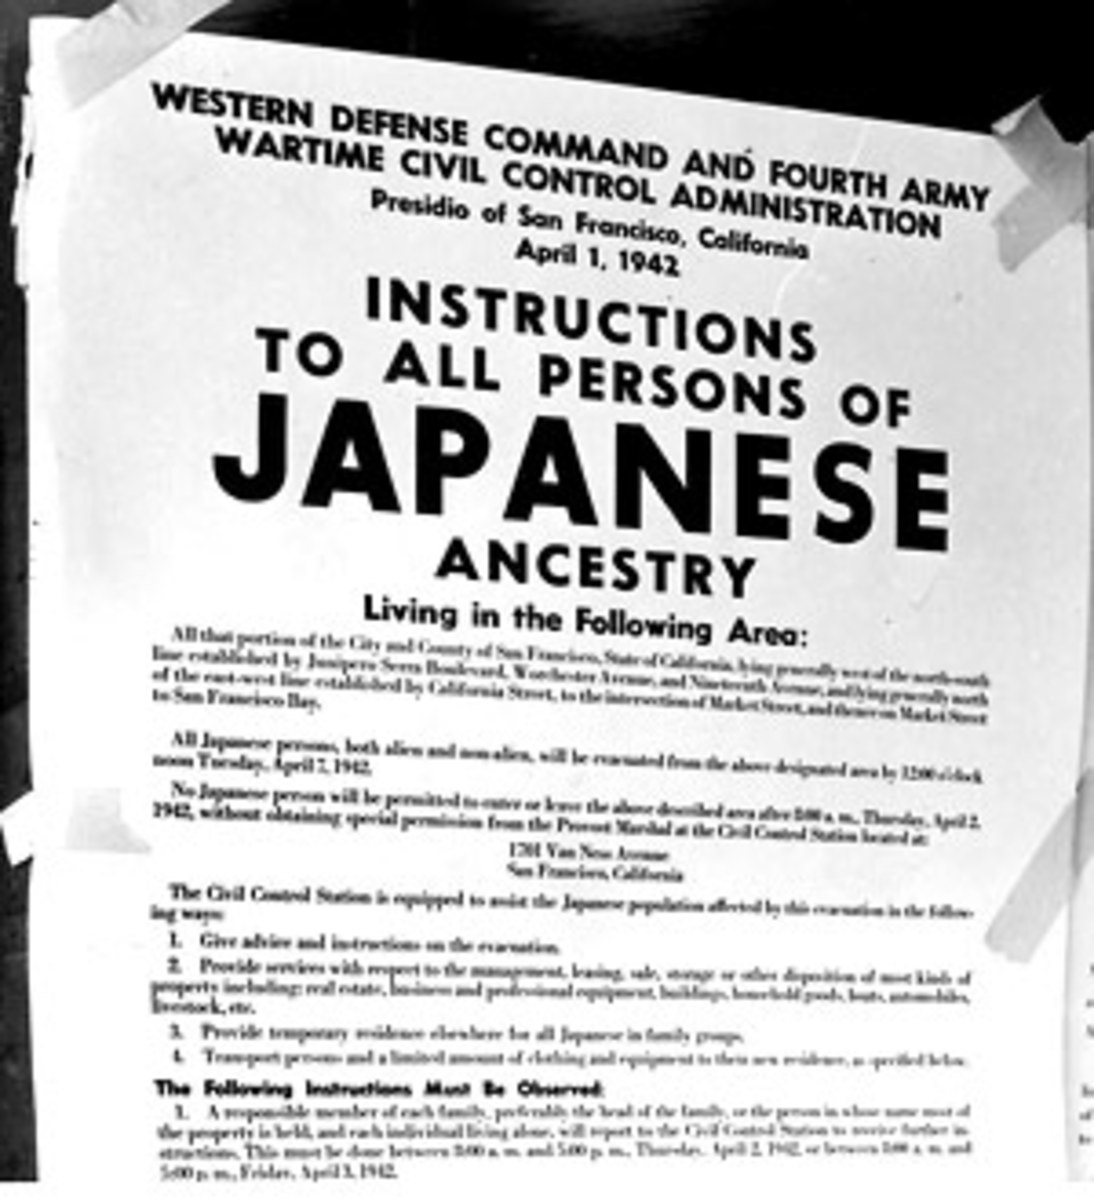 The internment of Japanese Americans was another case where wartime was used to target people wholesale as enemies of the state and justify their illegal treatment